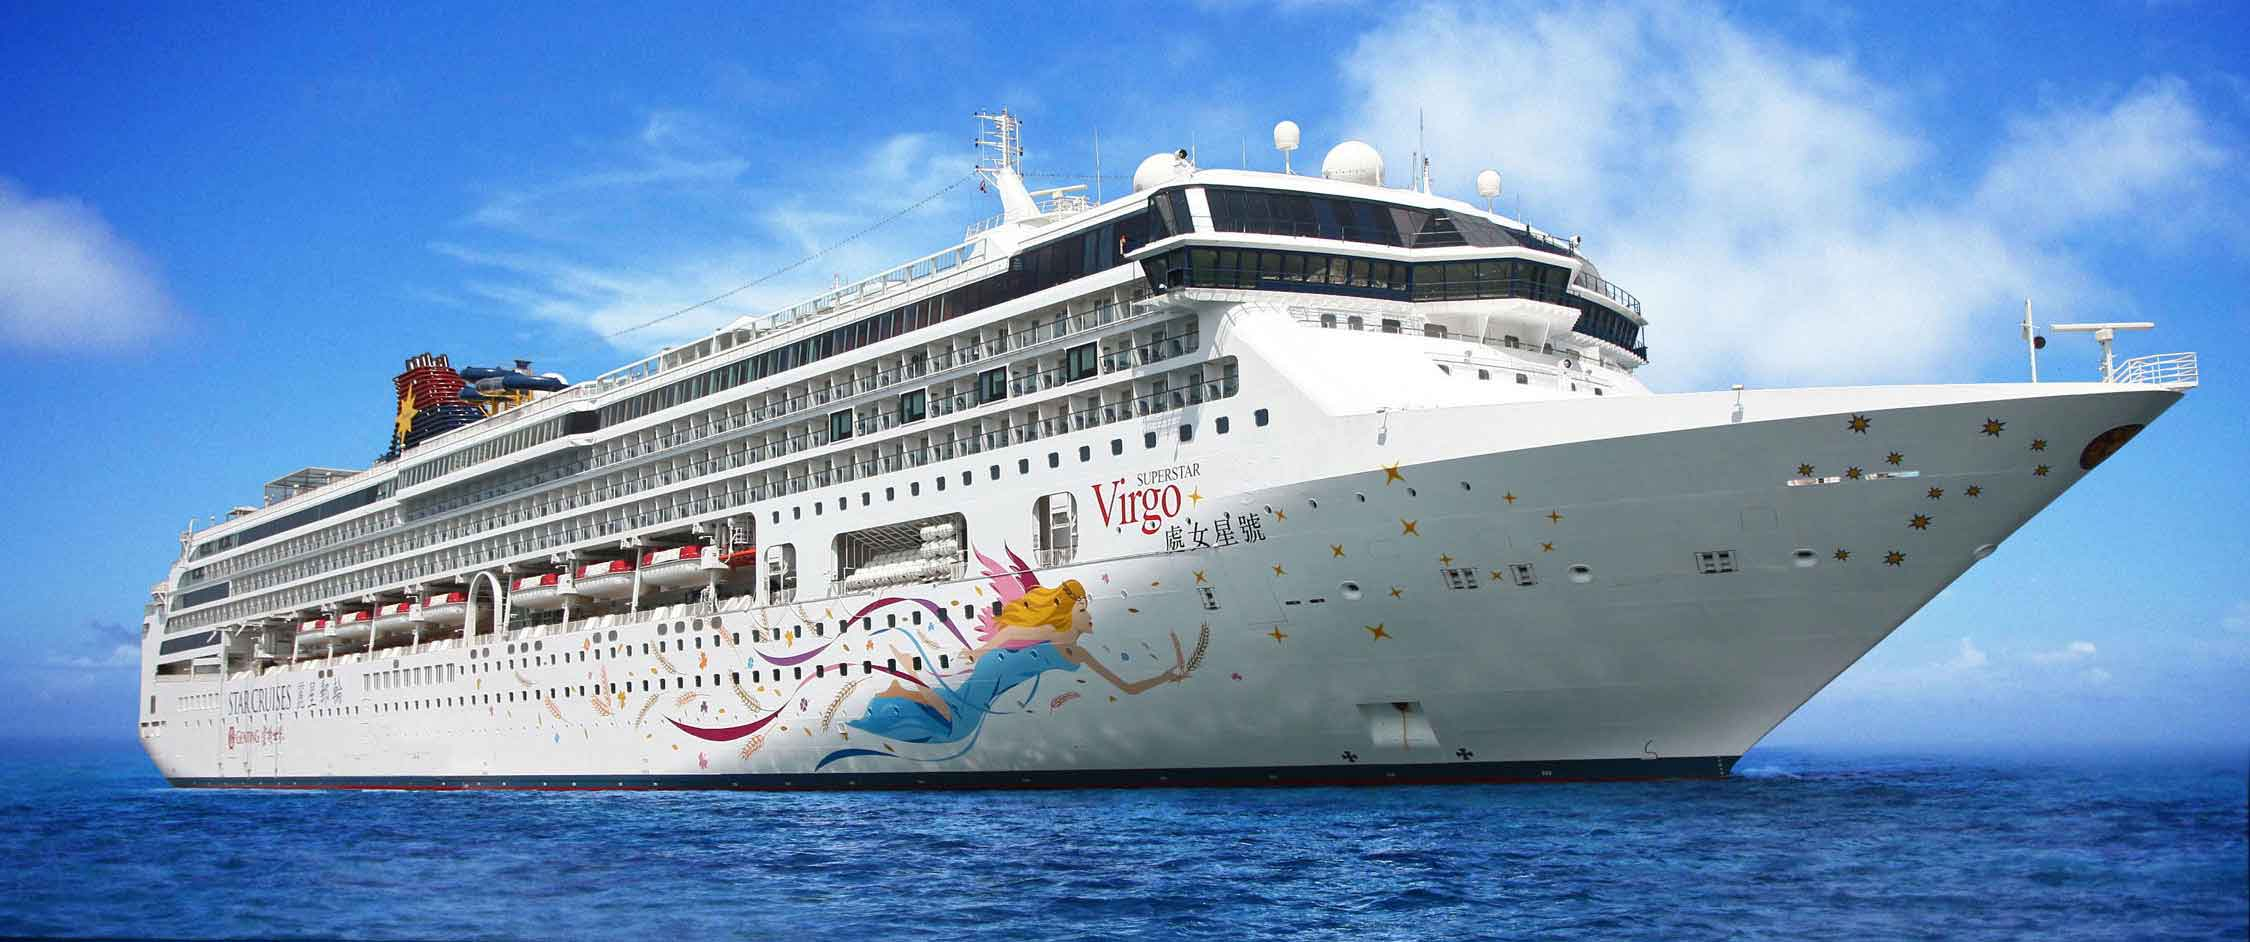 Gft forex singapore dubai santo vibby forex dubai onboard credits that are purchased pre cruise through shop royal gifts royal caribbean gift certificates or through the groups program are considered xflitez Images